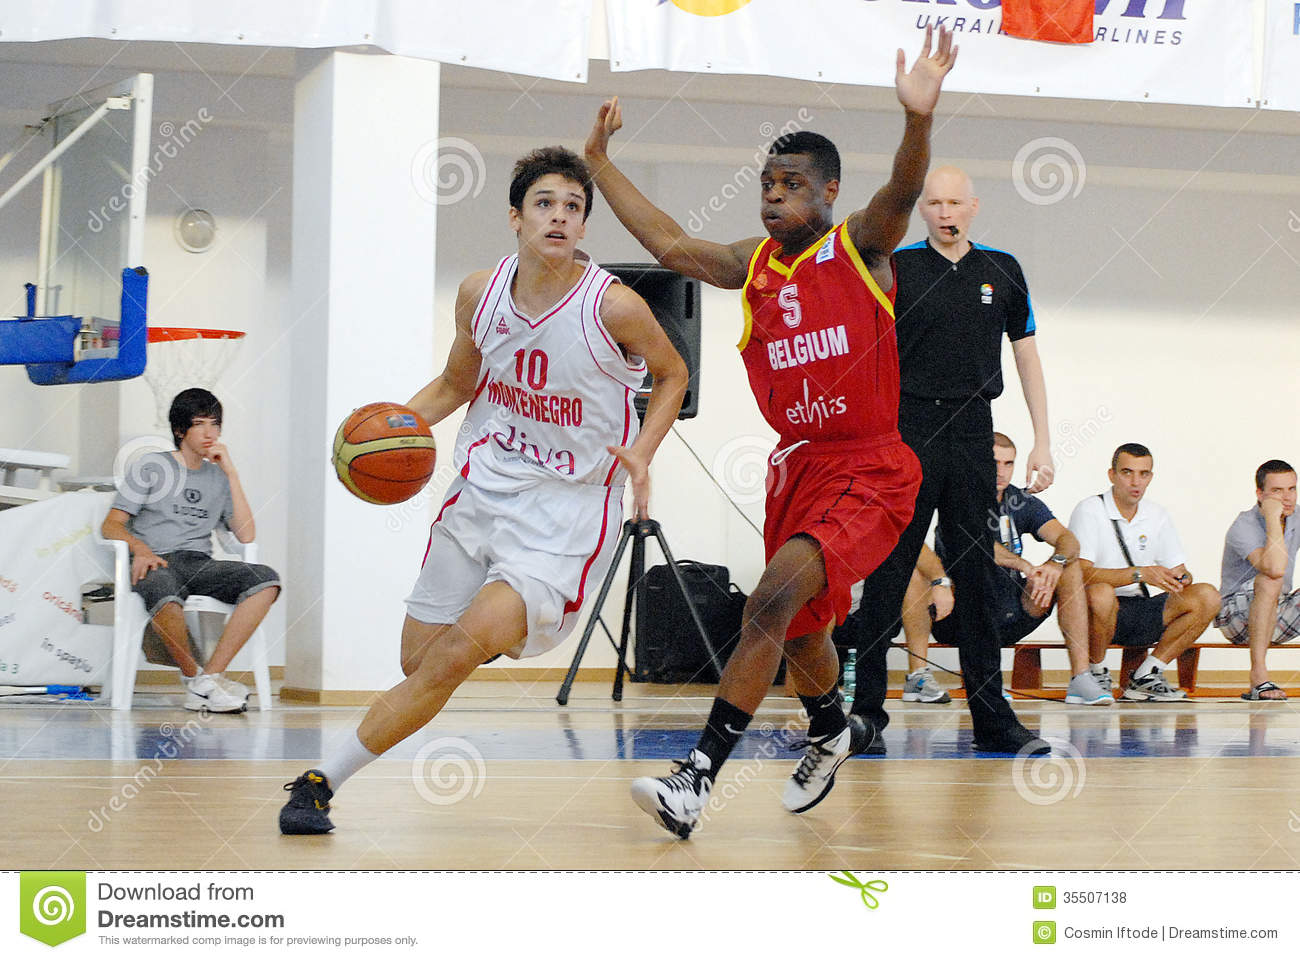 Basketball Players In Action Editorial Stock Photo - Image: 35507138